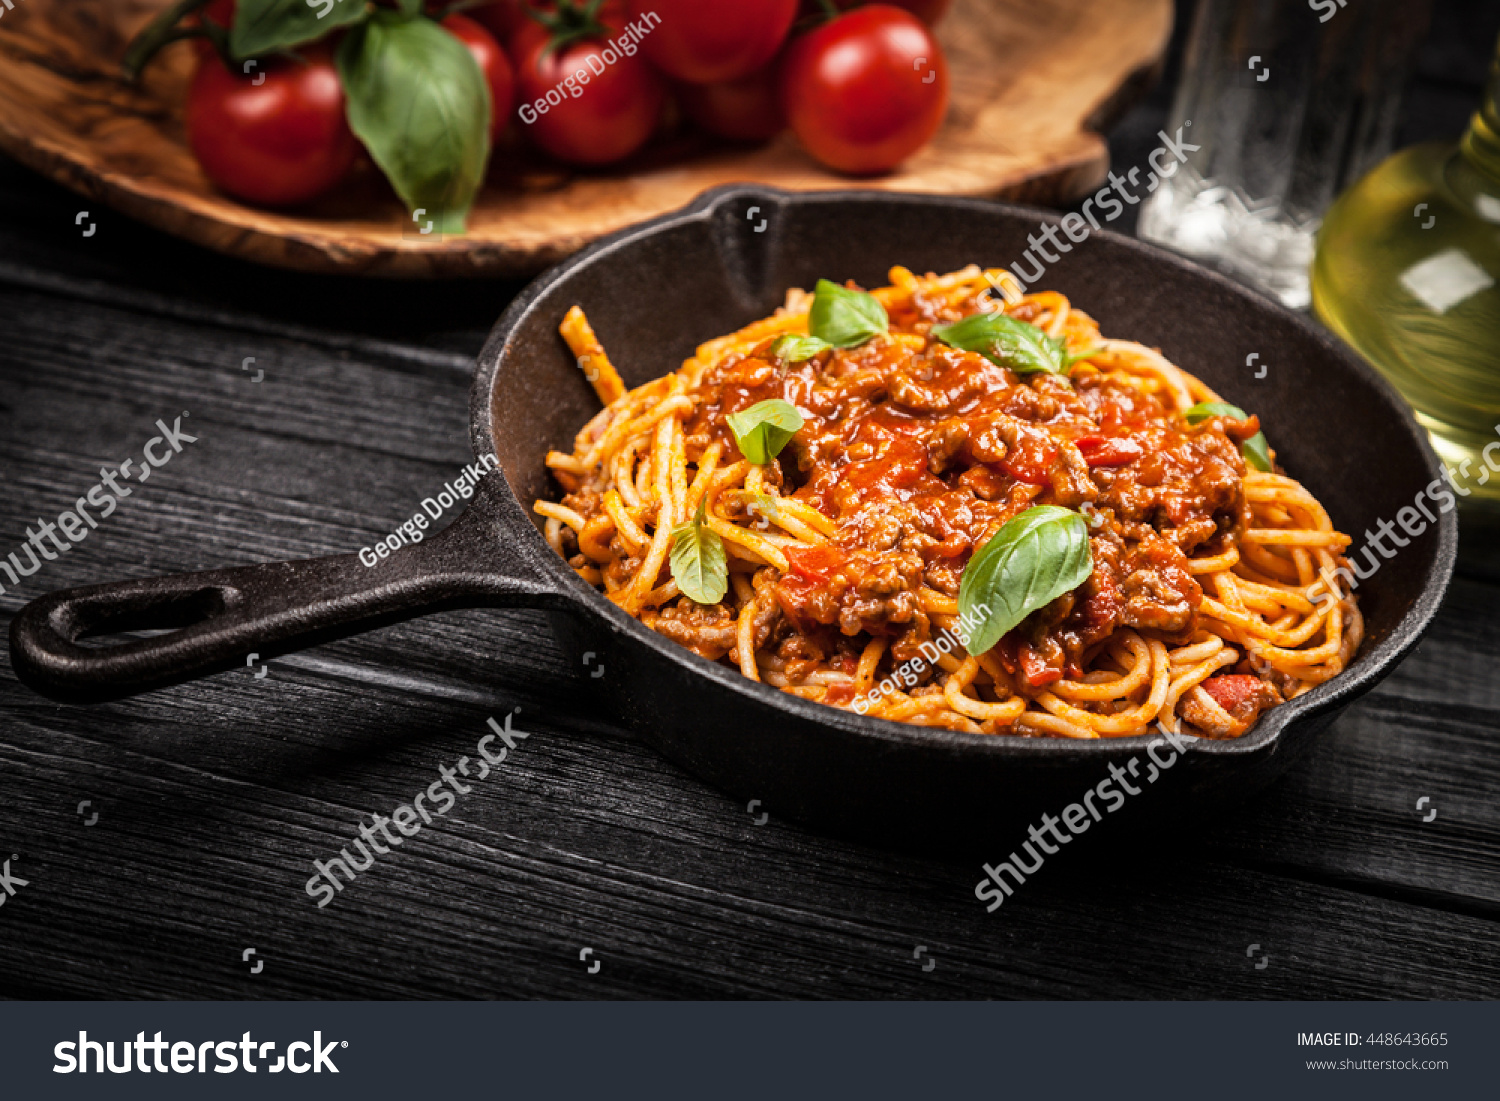 traditional spaghetti bolognese stock photo 448643665 shutterstock. Black Bedroom Furniture Sets. Home Design Ideas